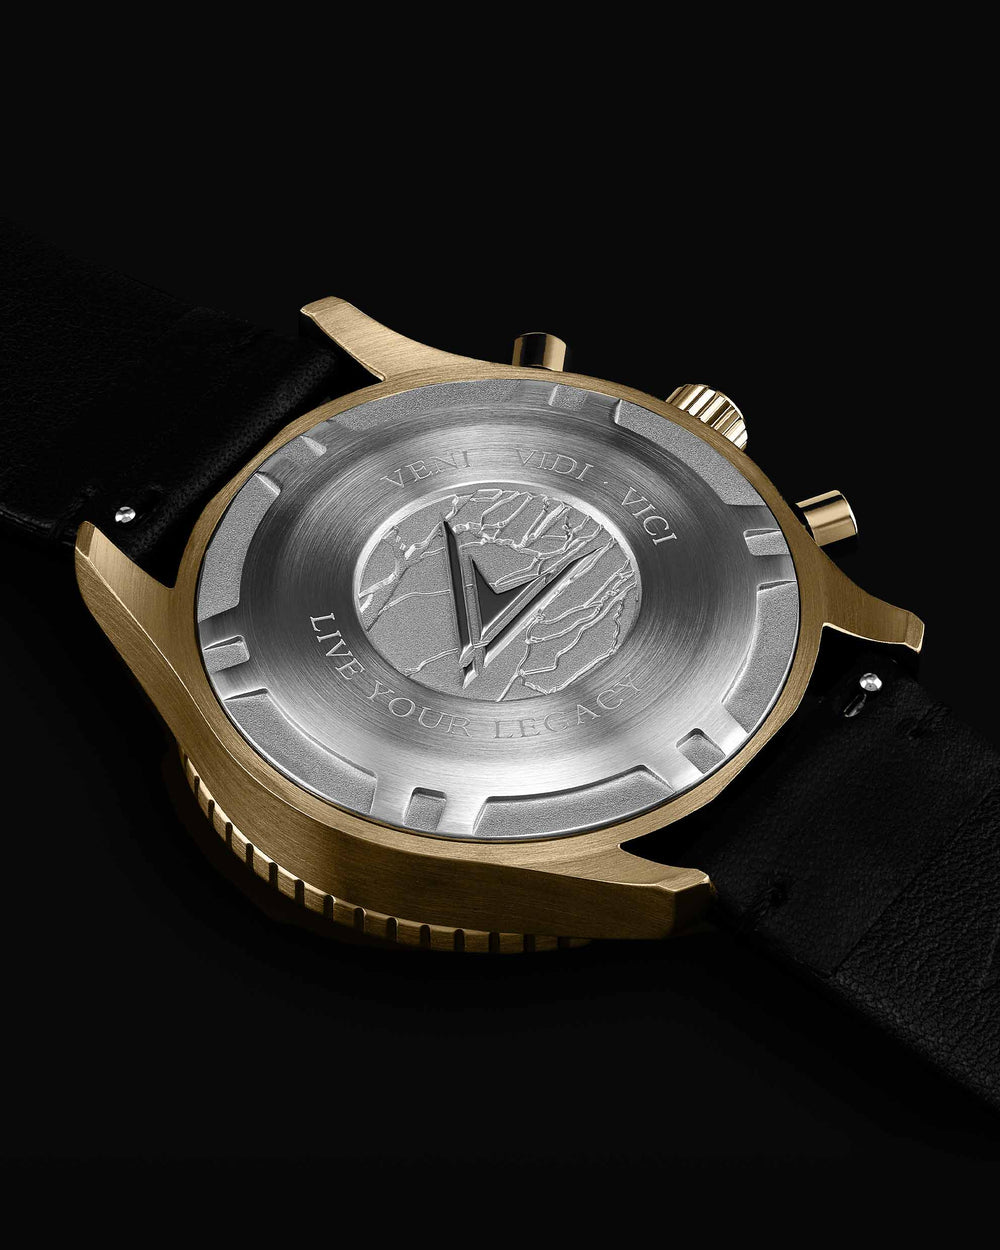 Outrider Italian Marble and 316L Stainless Steel Caseback with Veni Vidi Vici Live Your Legacy Engraving